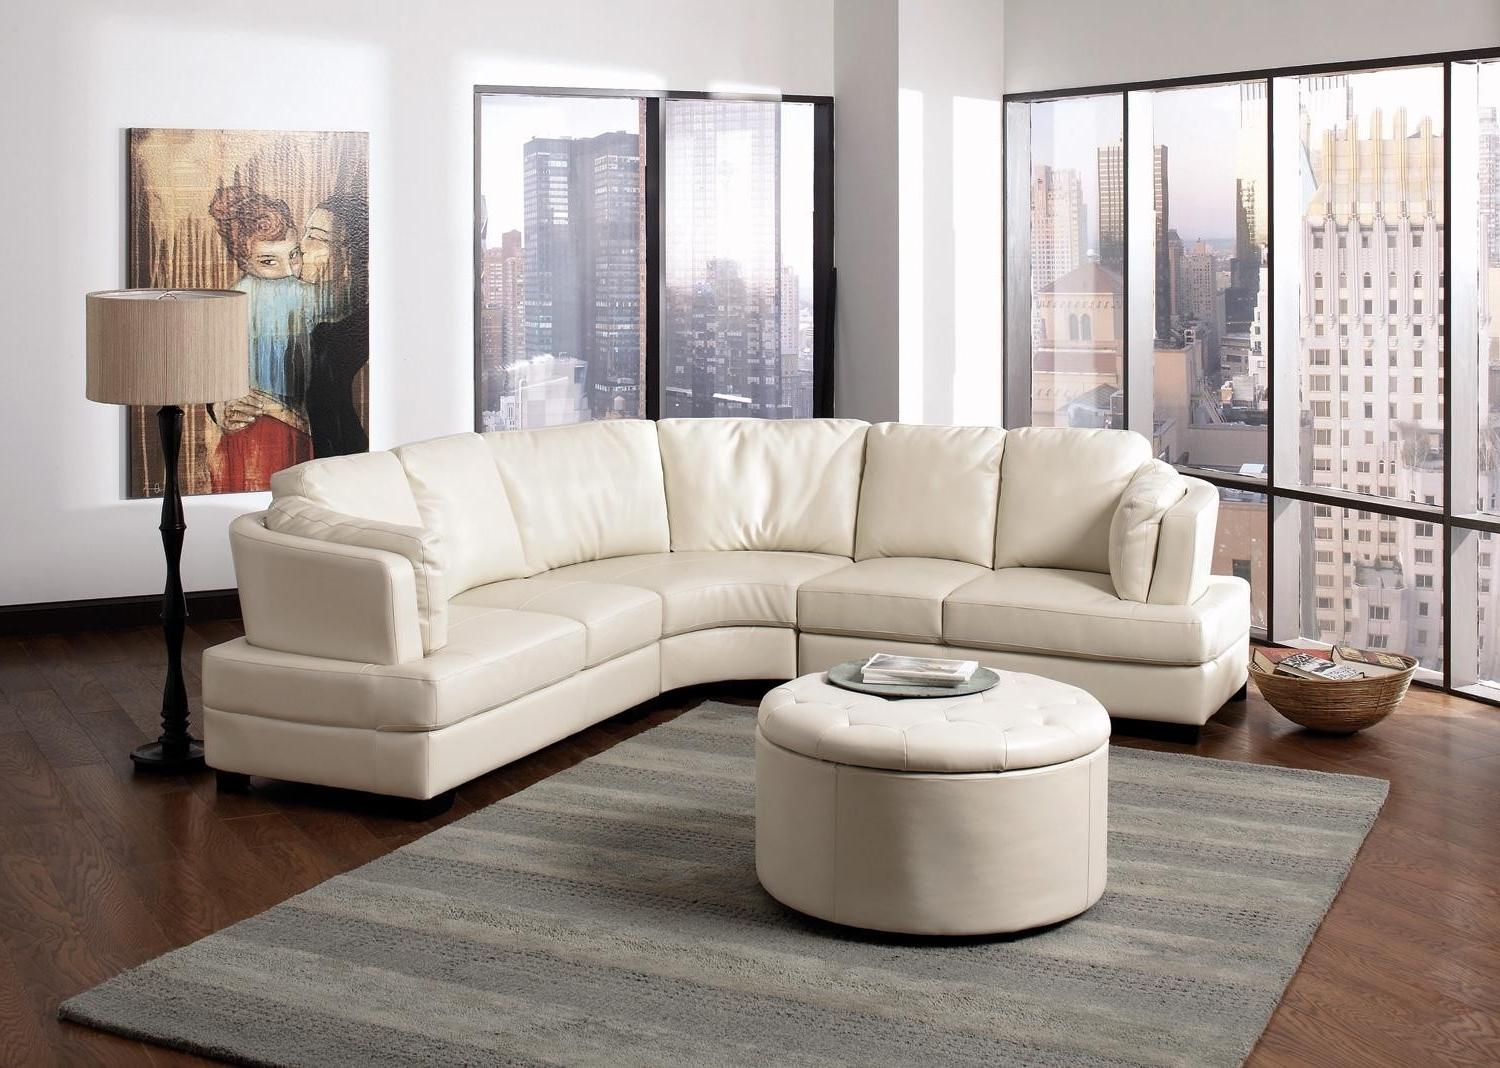 Bedroom: Awesome U Shaped Sectional Canada U Shaped Sectionals In Best And Newest Canada Sectional Sofas For Small Spaces (View 5 of 15)